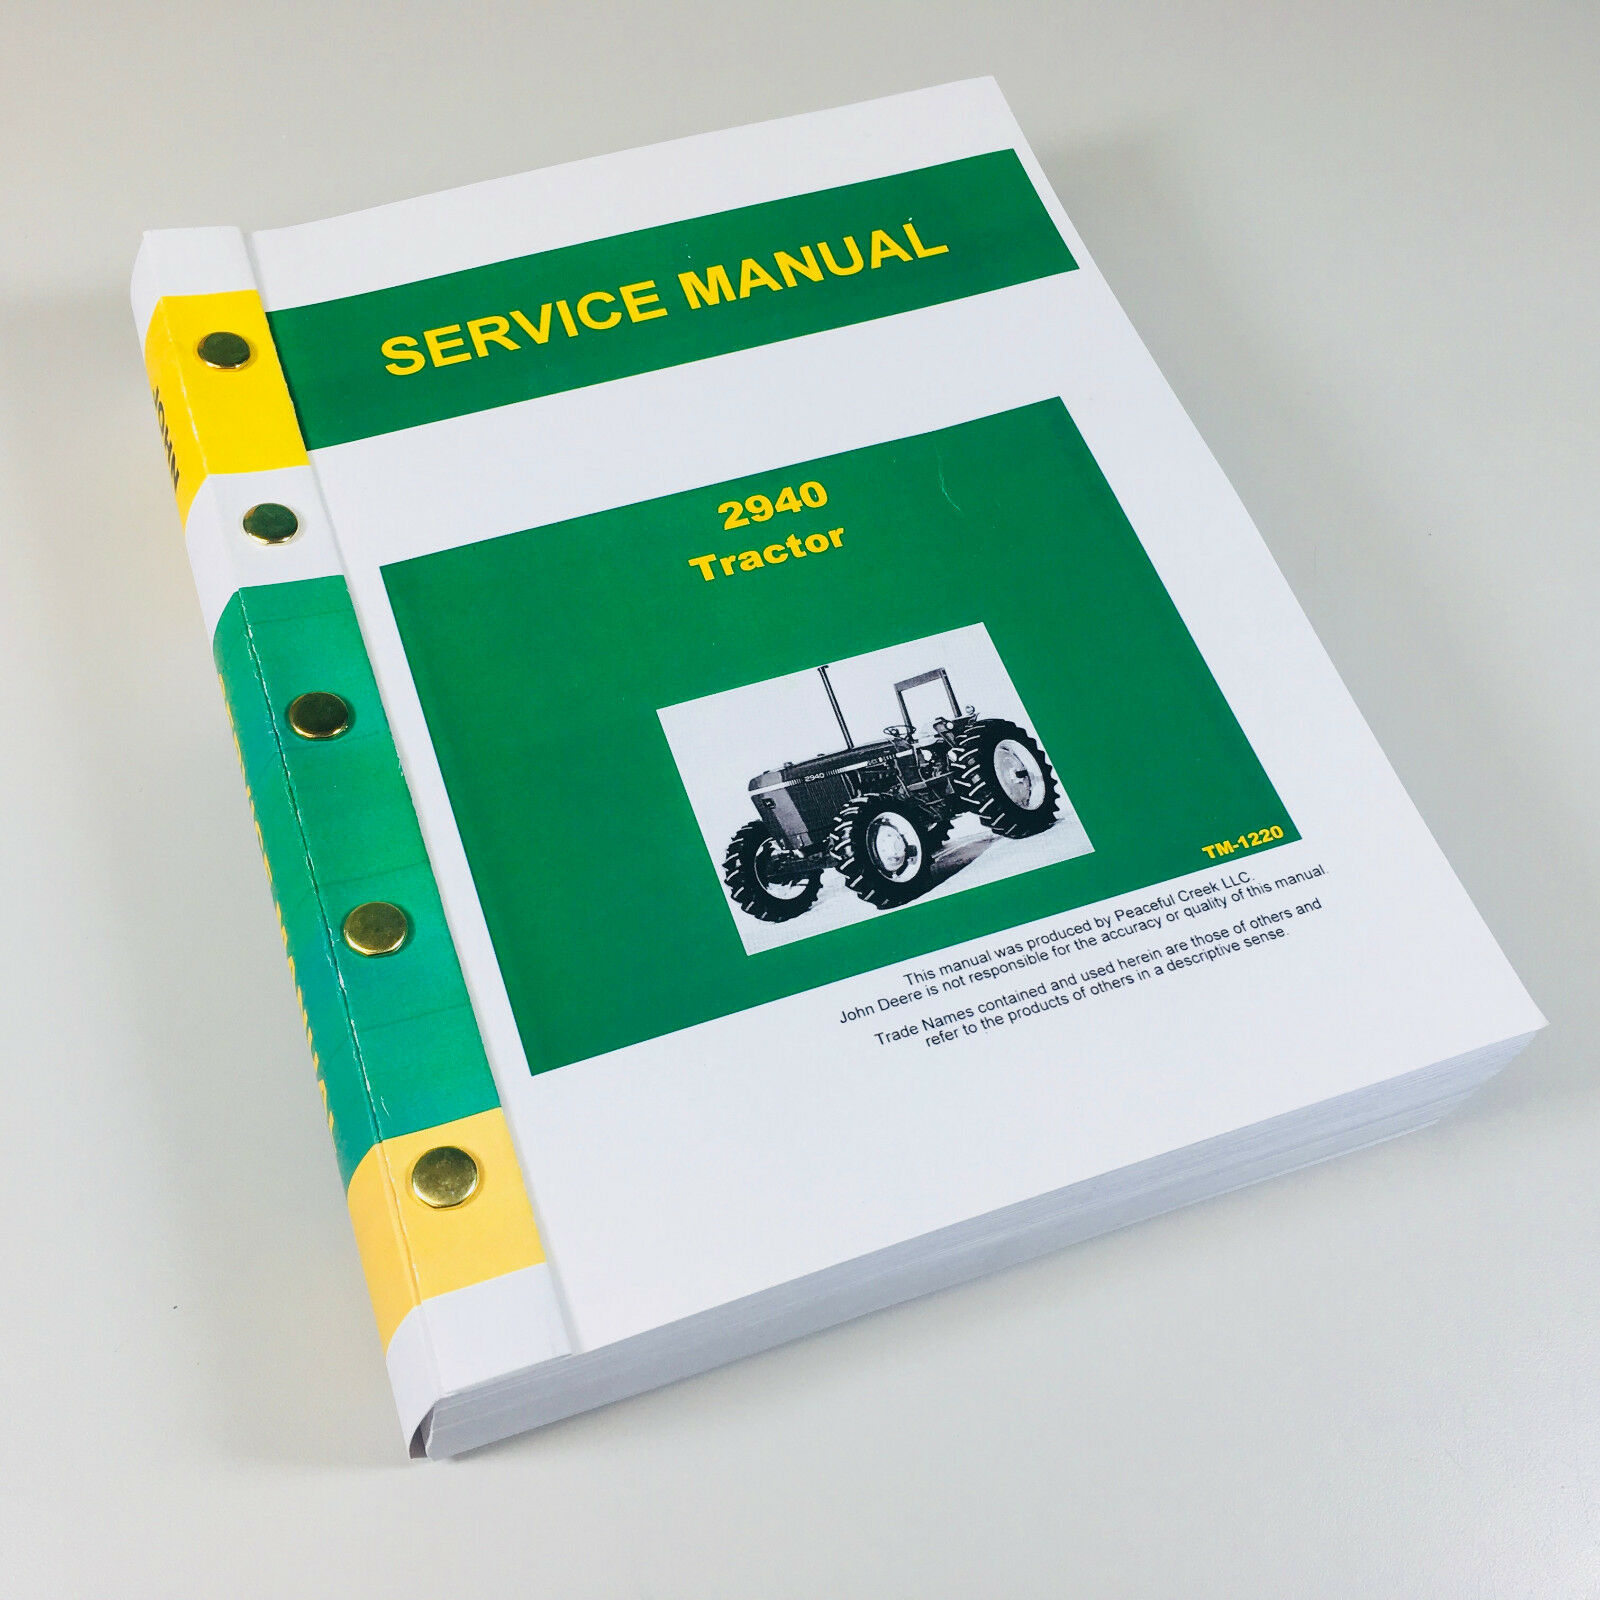 John Deere 2940 Wiring Diagram Free Picture Just Another Data 1530 Service Manual For Tractor Technical Repair Shop 2150